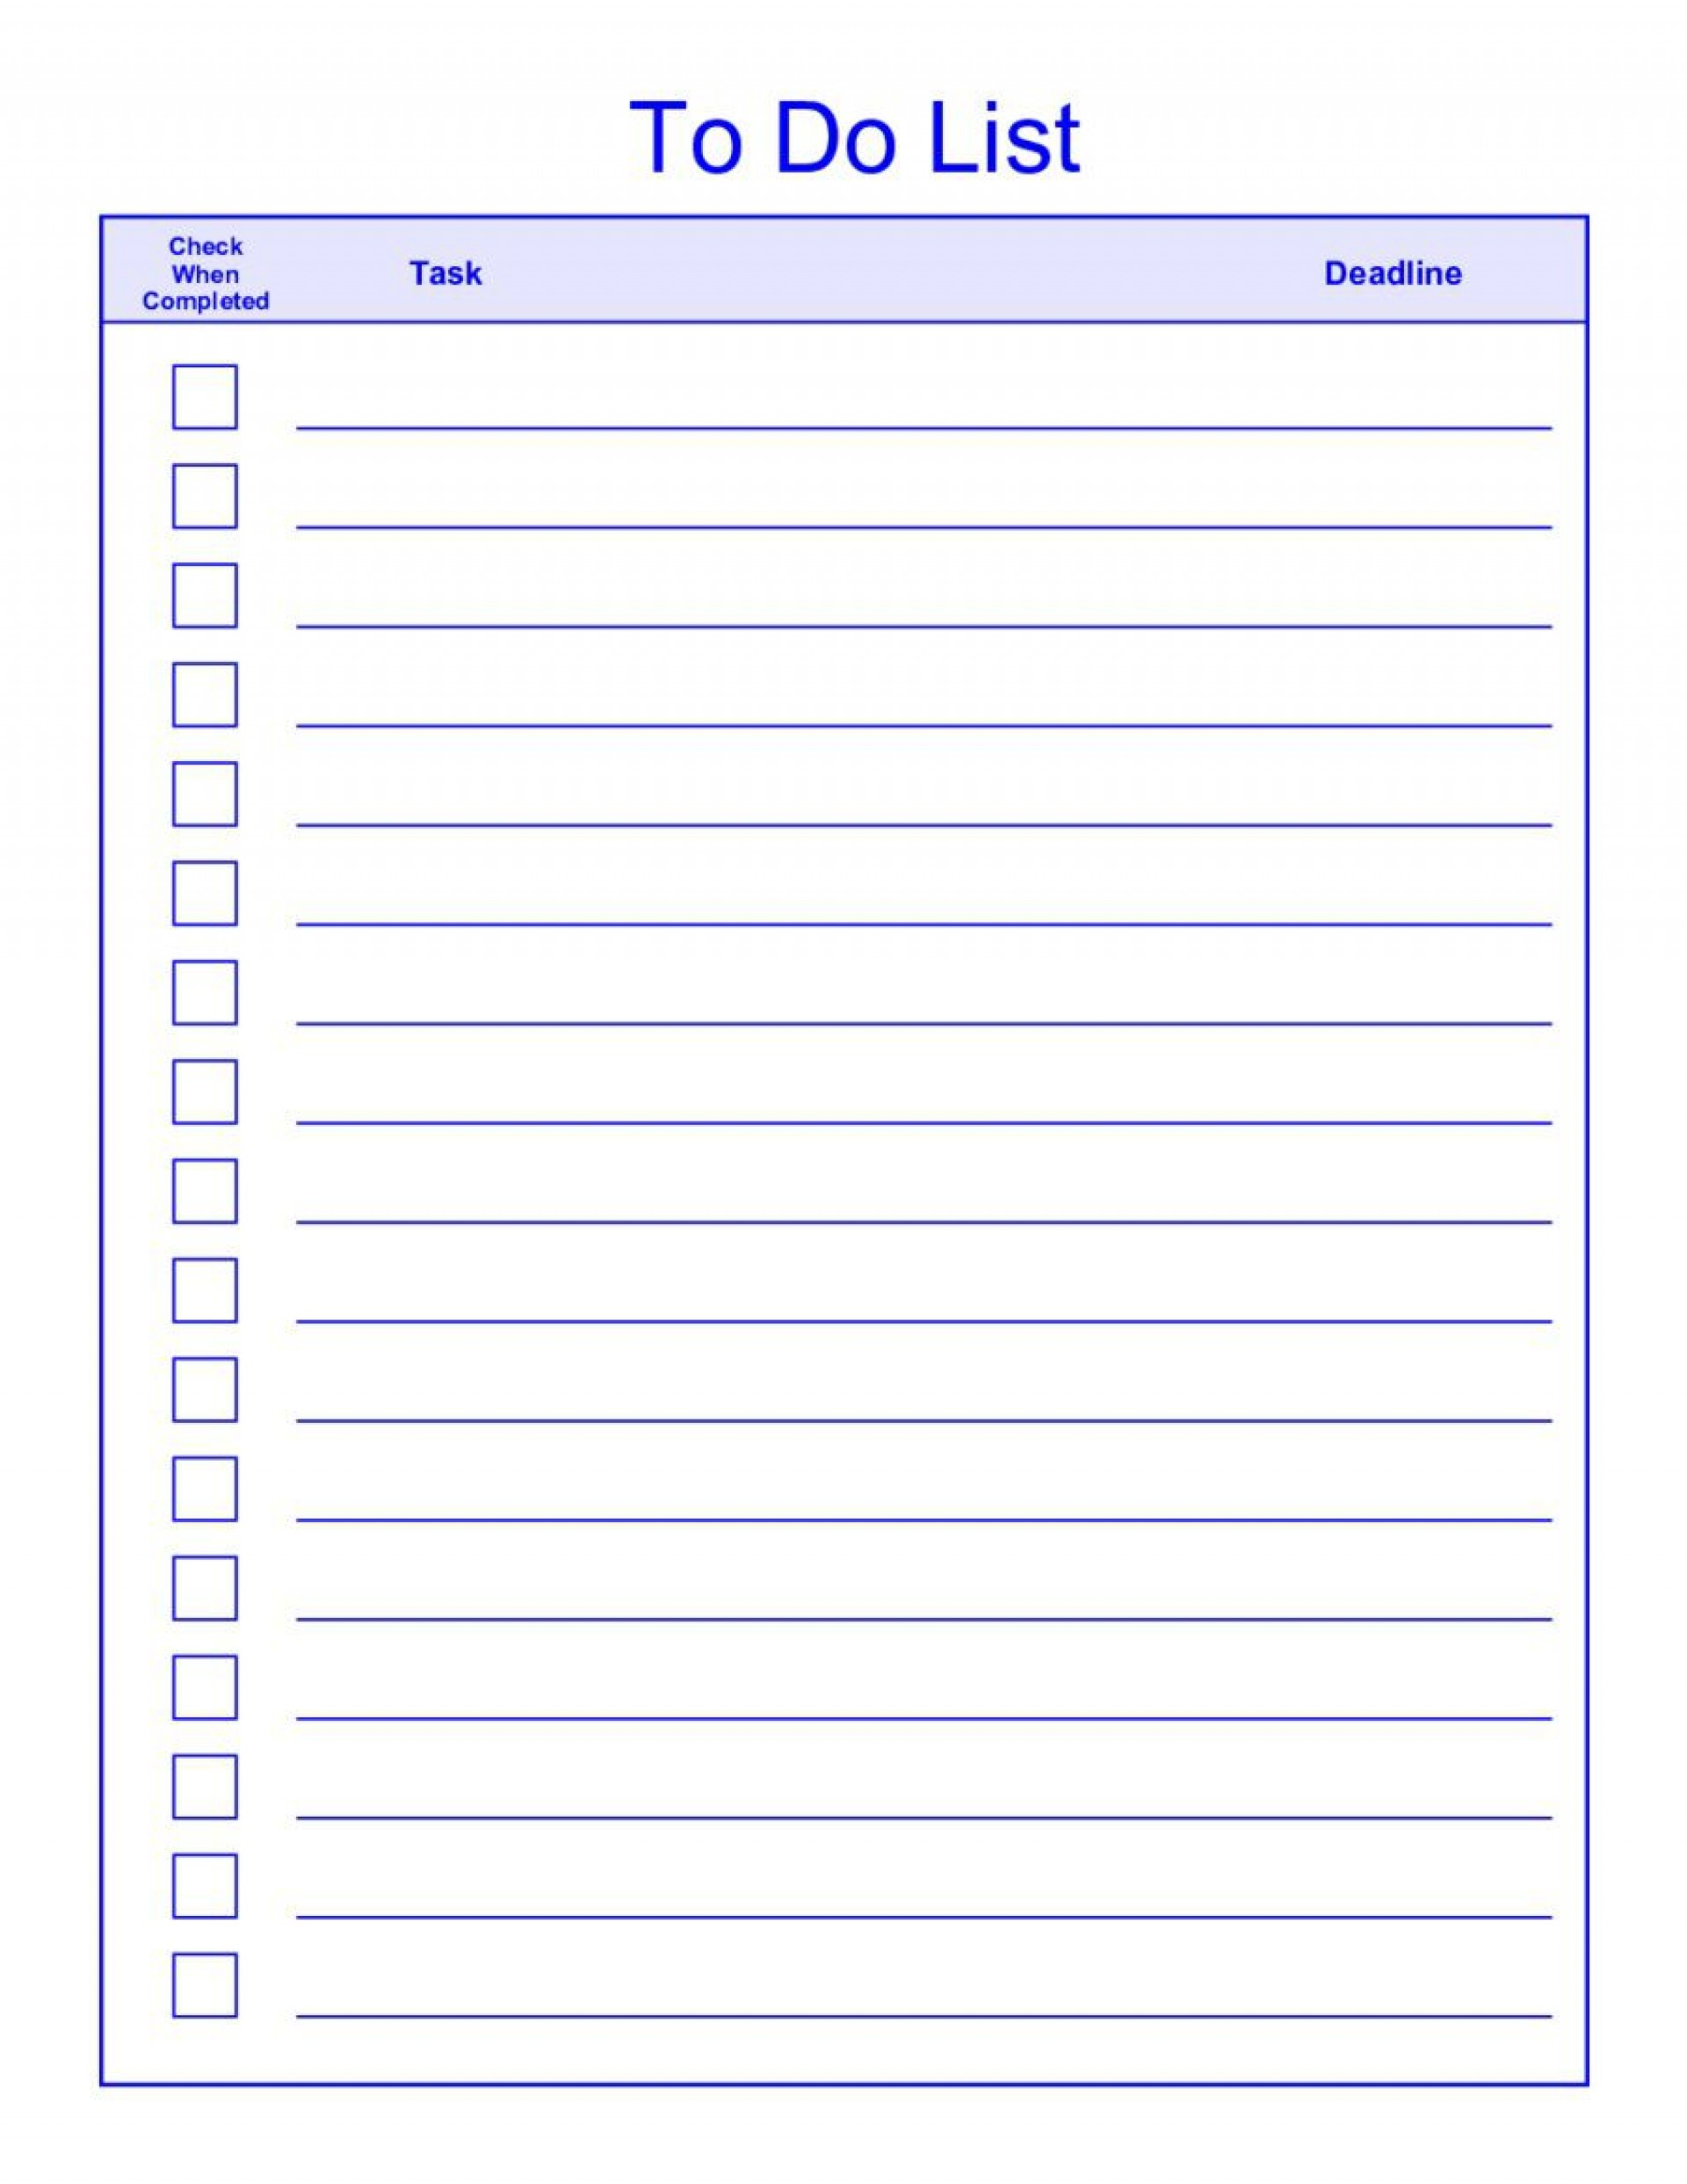 008 Wondrou Thing To Do List Template Concept 1920